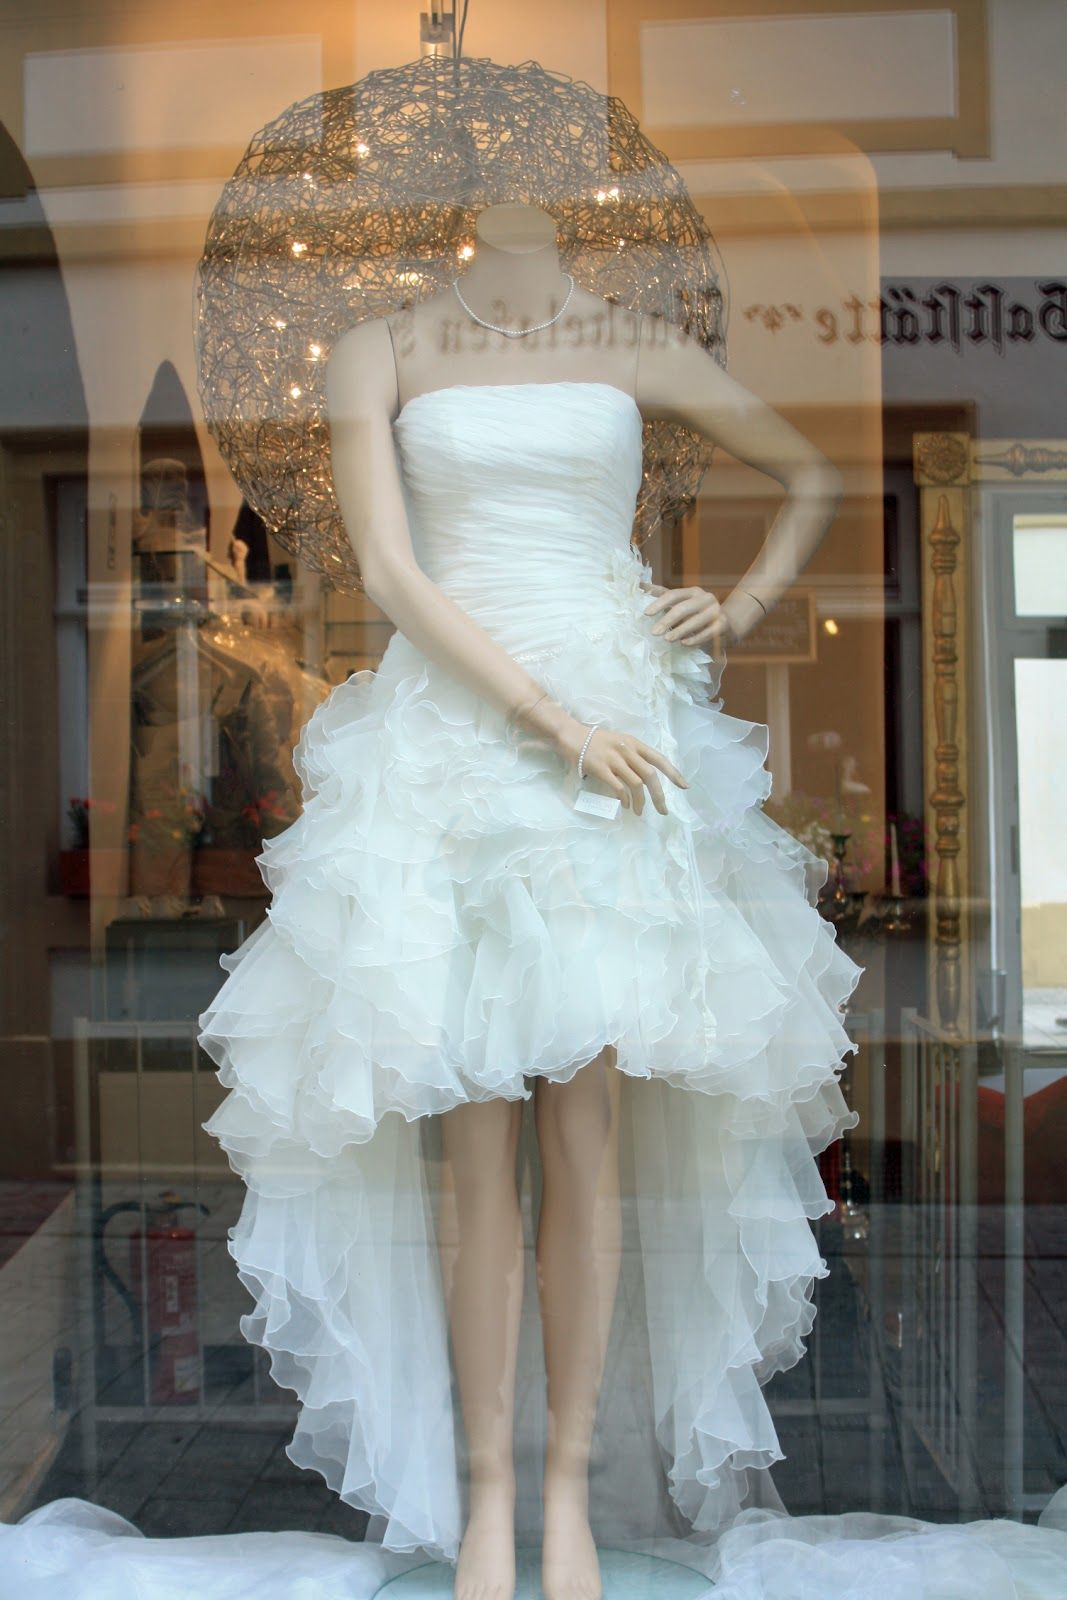 Where to buy wedding dresses in germany